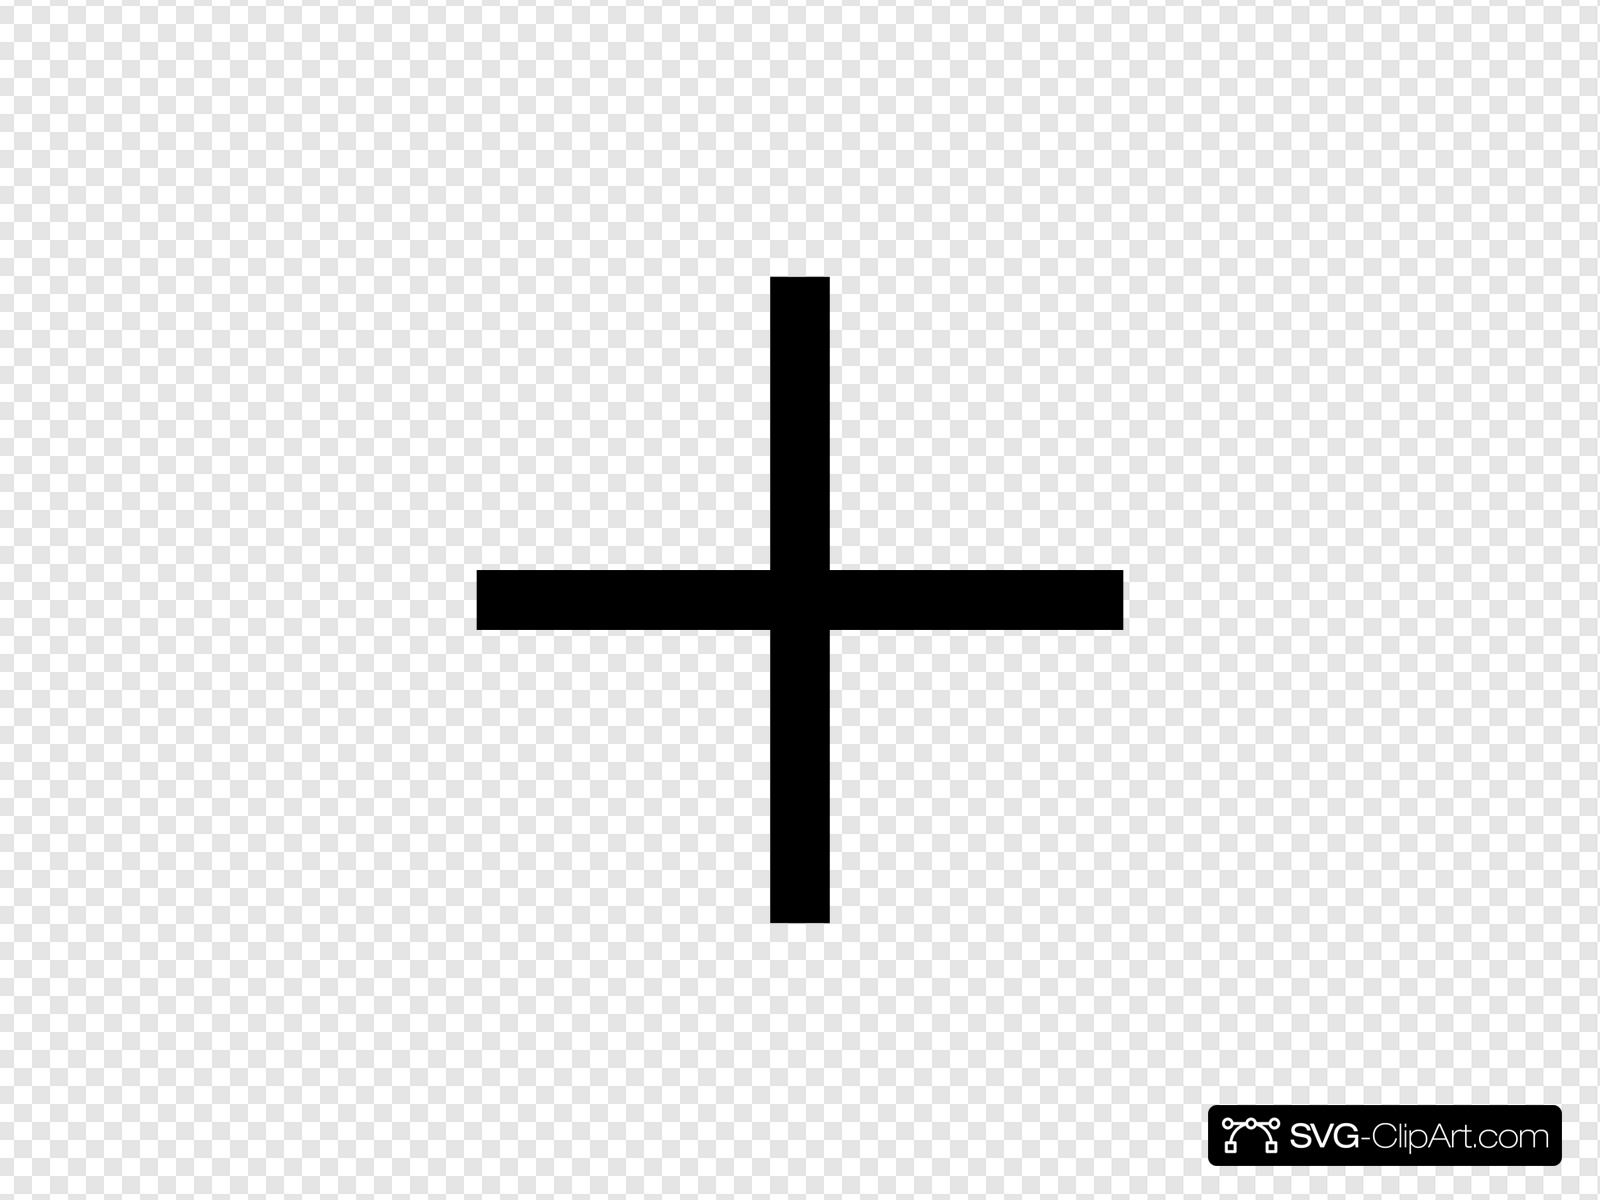 Cross Silhouette Clip art, Icon and SVG.